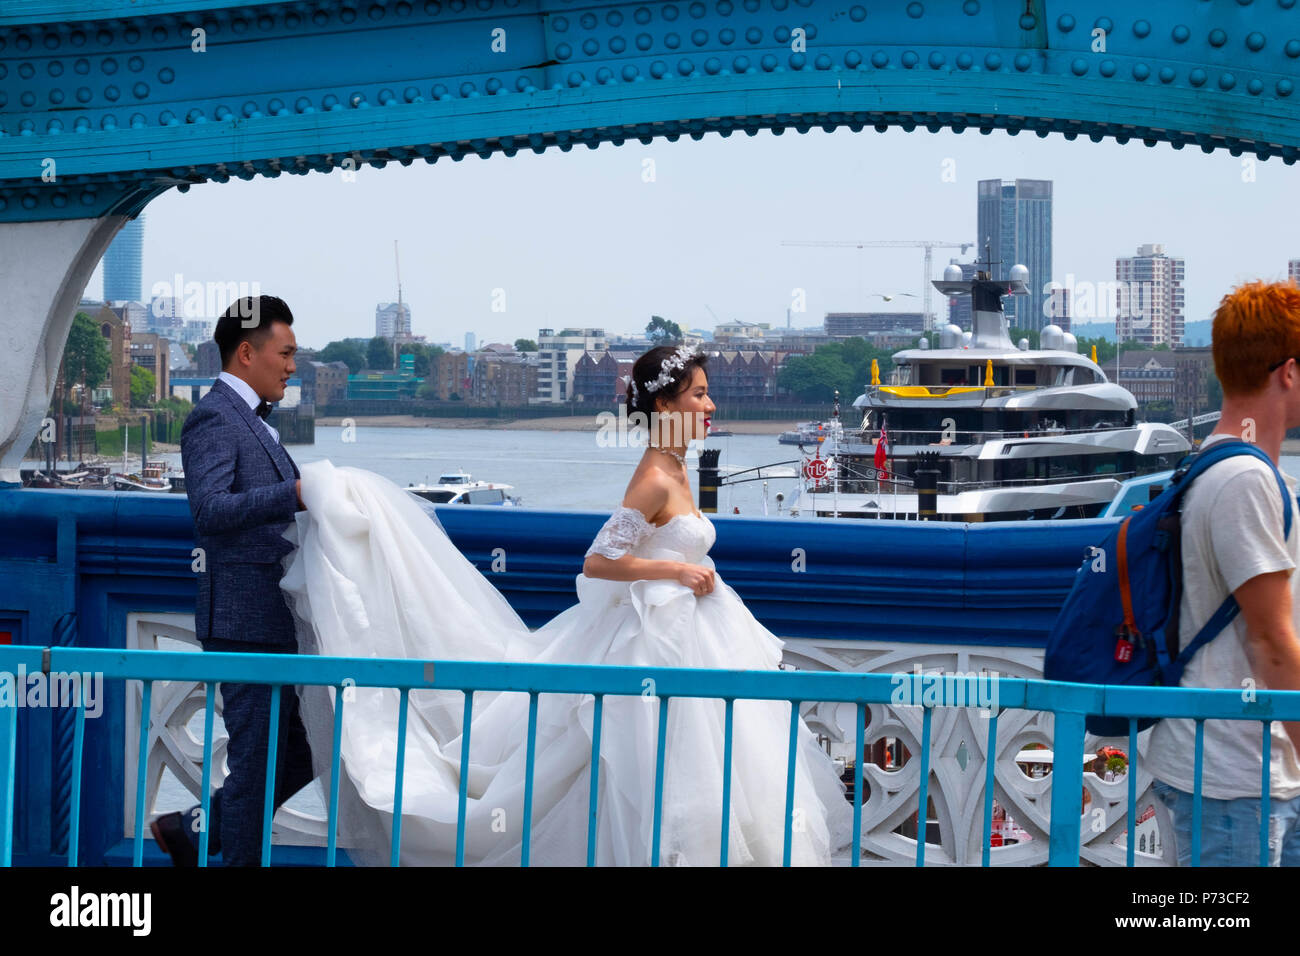 London, England. 4th July 2018. A couple have their wedding photos taken on London's Tower Bridge among all the tourists on another very hot day. The present heatwave is set to continue. ©Tim Ring/Alamy Live News Stock Photo